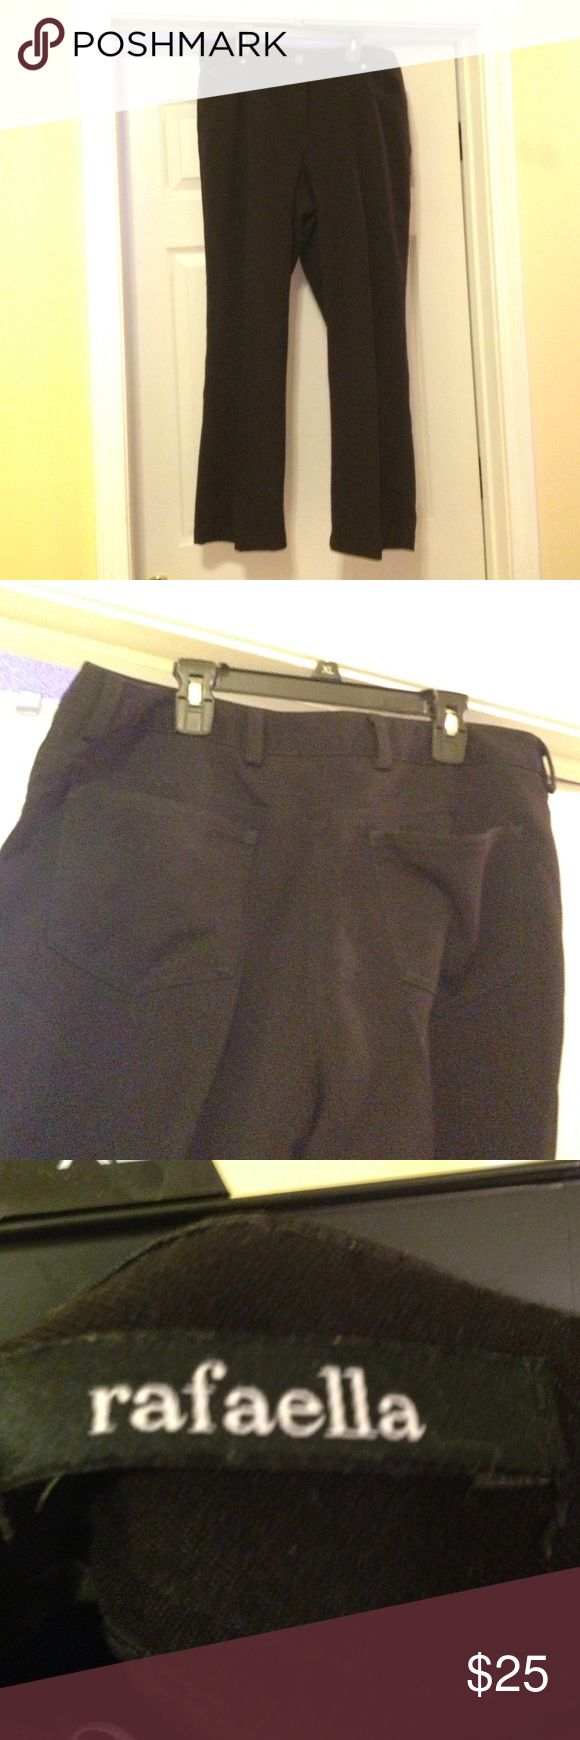 Rafaella Black Pants Rafaella Black Pants, size 14. Polyester, Rayon, spandex. Great for weekend wear. Paid $50 at Belk! Excellent condition! Rafaella Pants Trousers